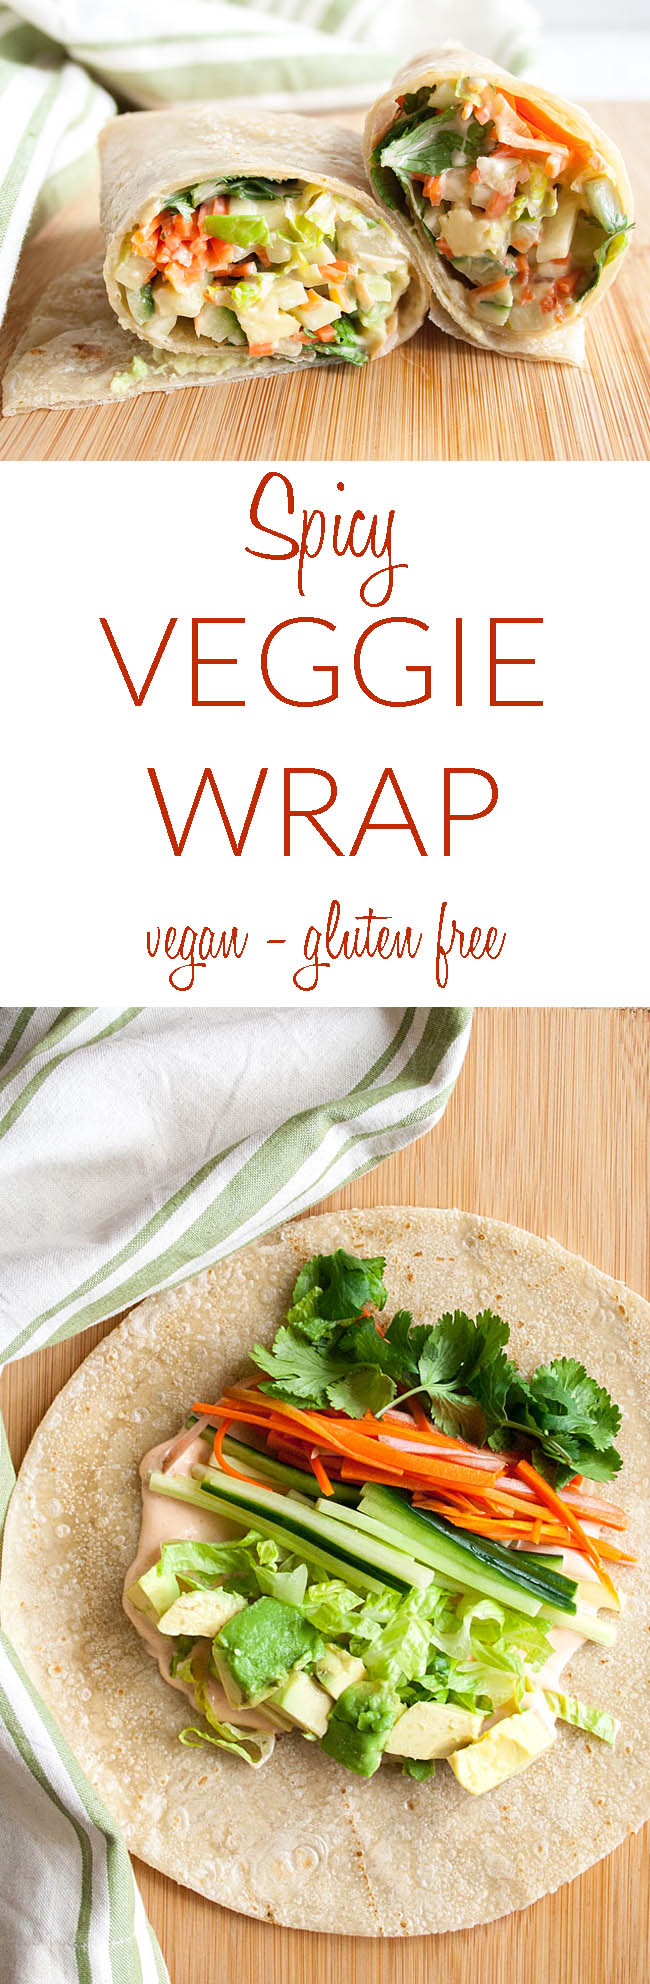 Spicy Veggie Wrap collage photo with text.